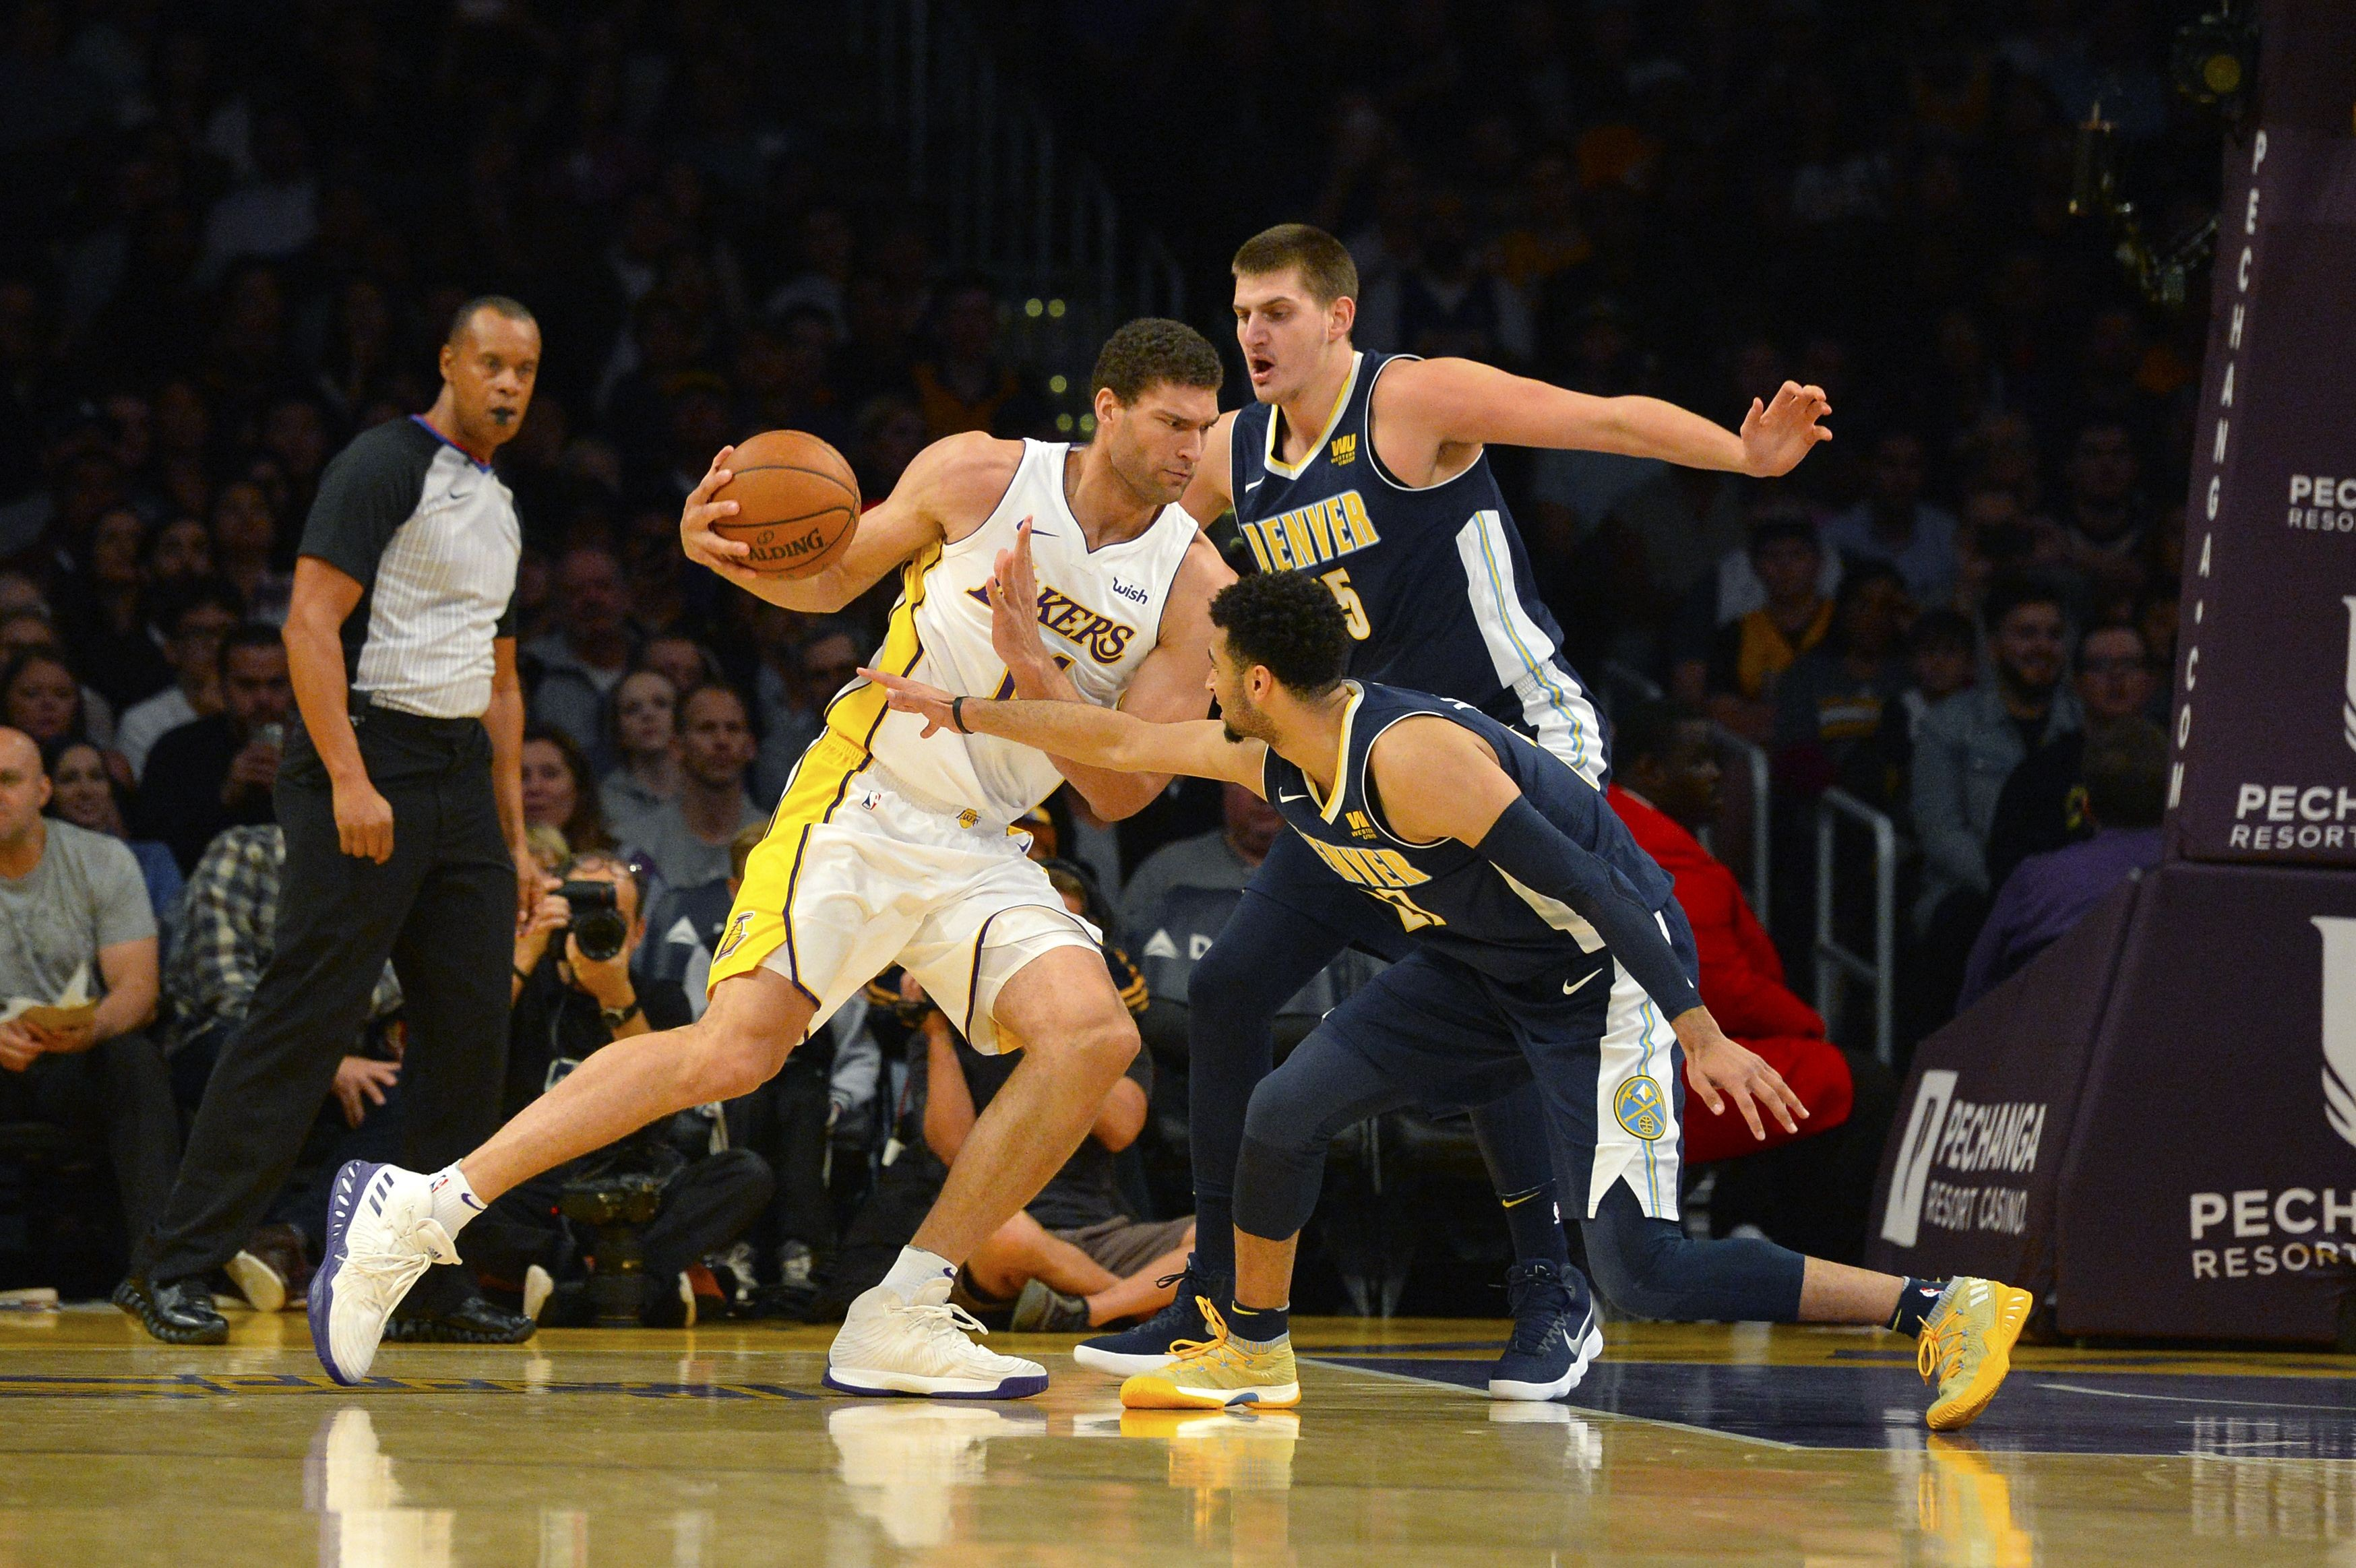 064e8cfb670 Los Angeles Lakers vs Denver Nuggets  How to watch NBA online